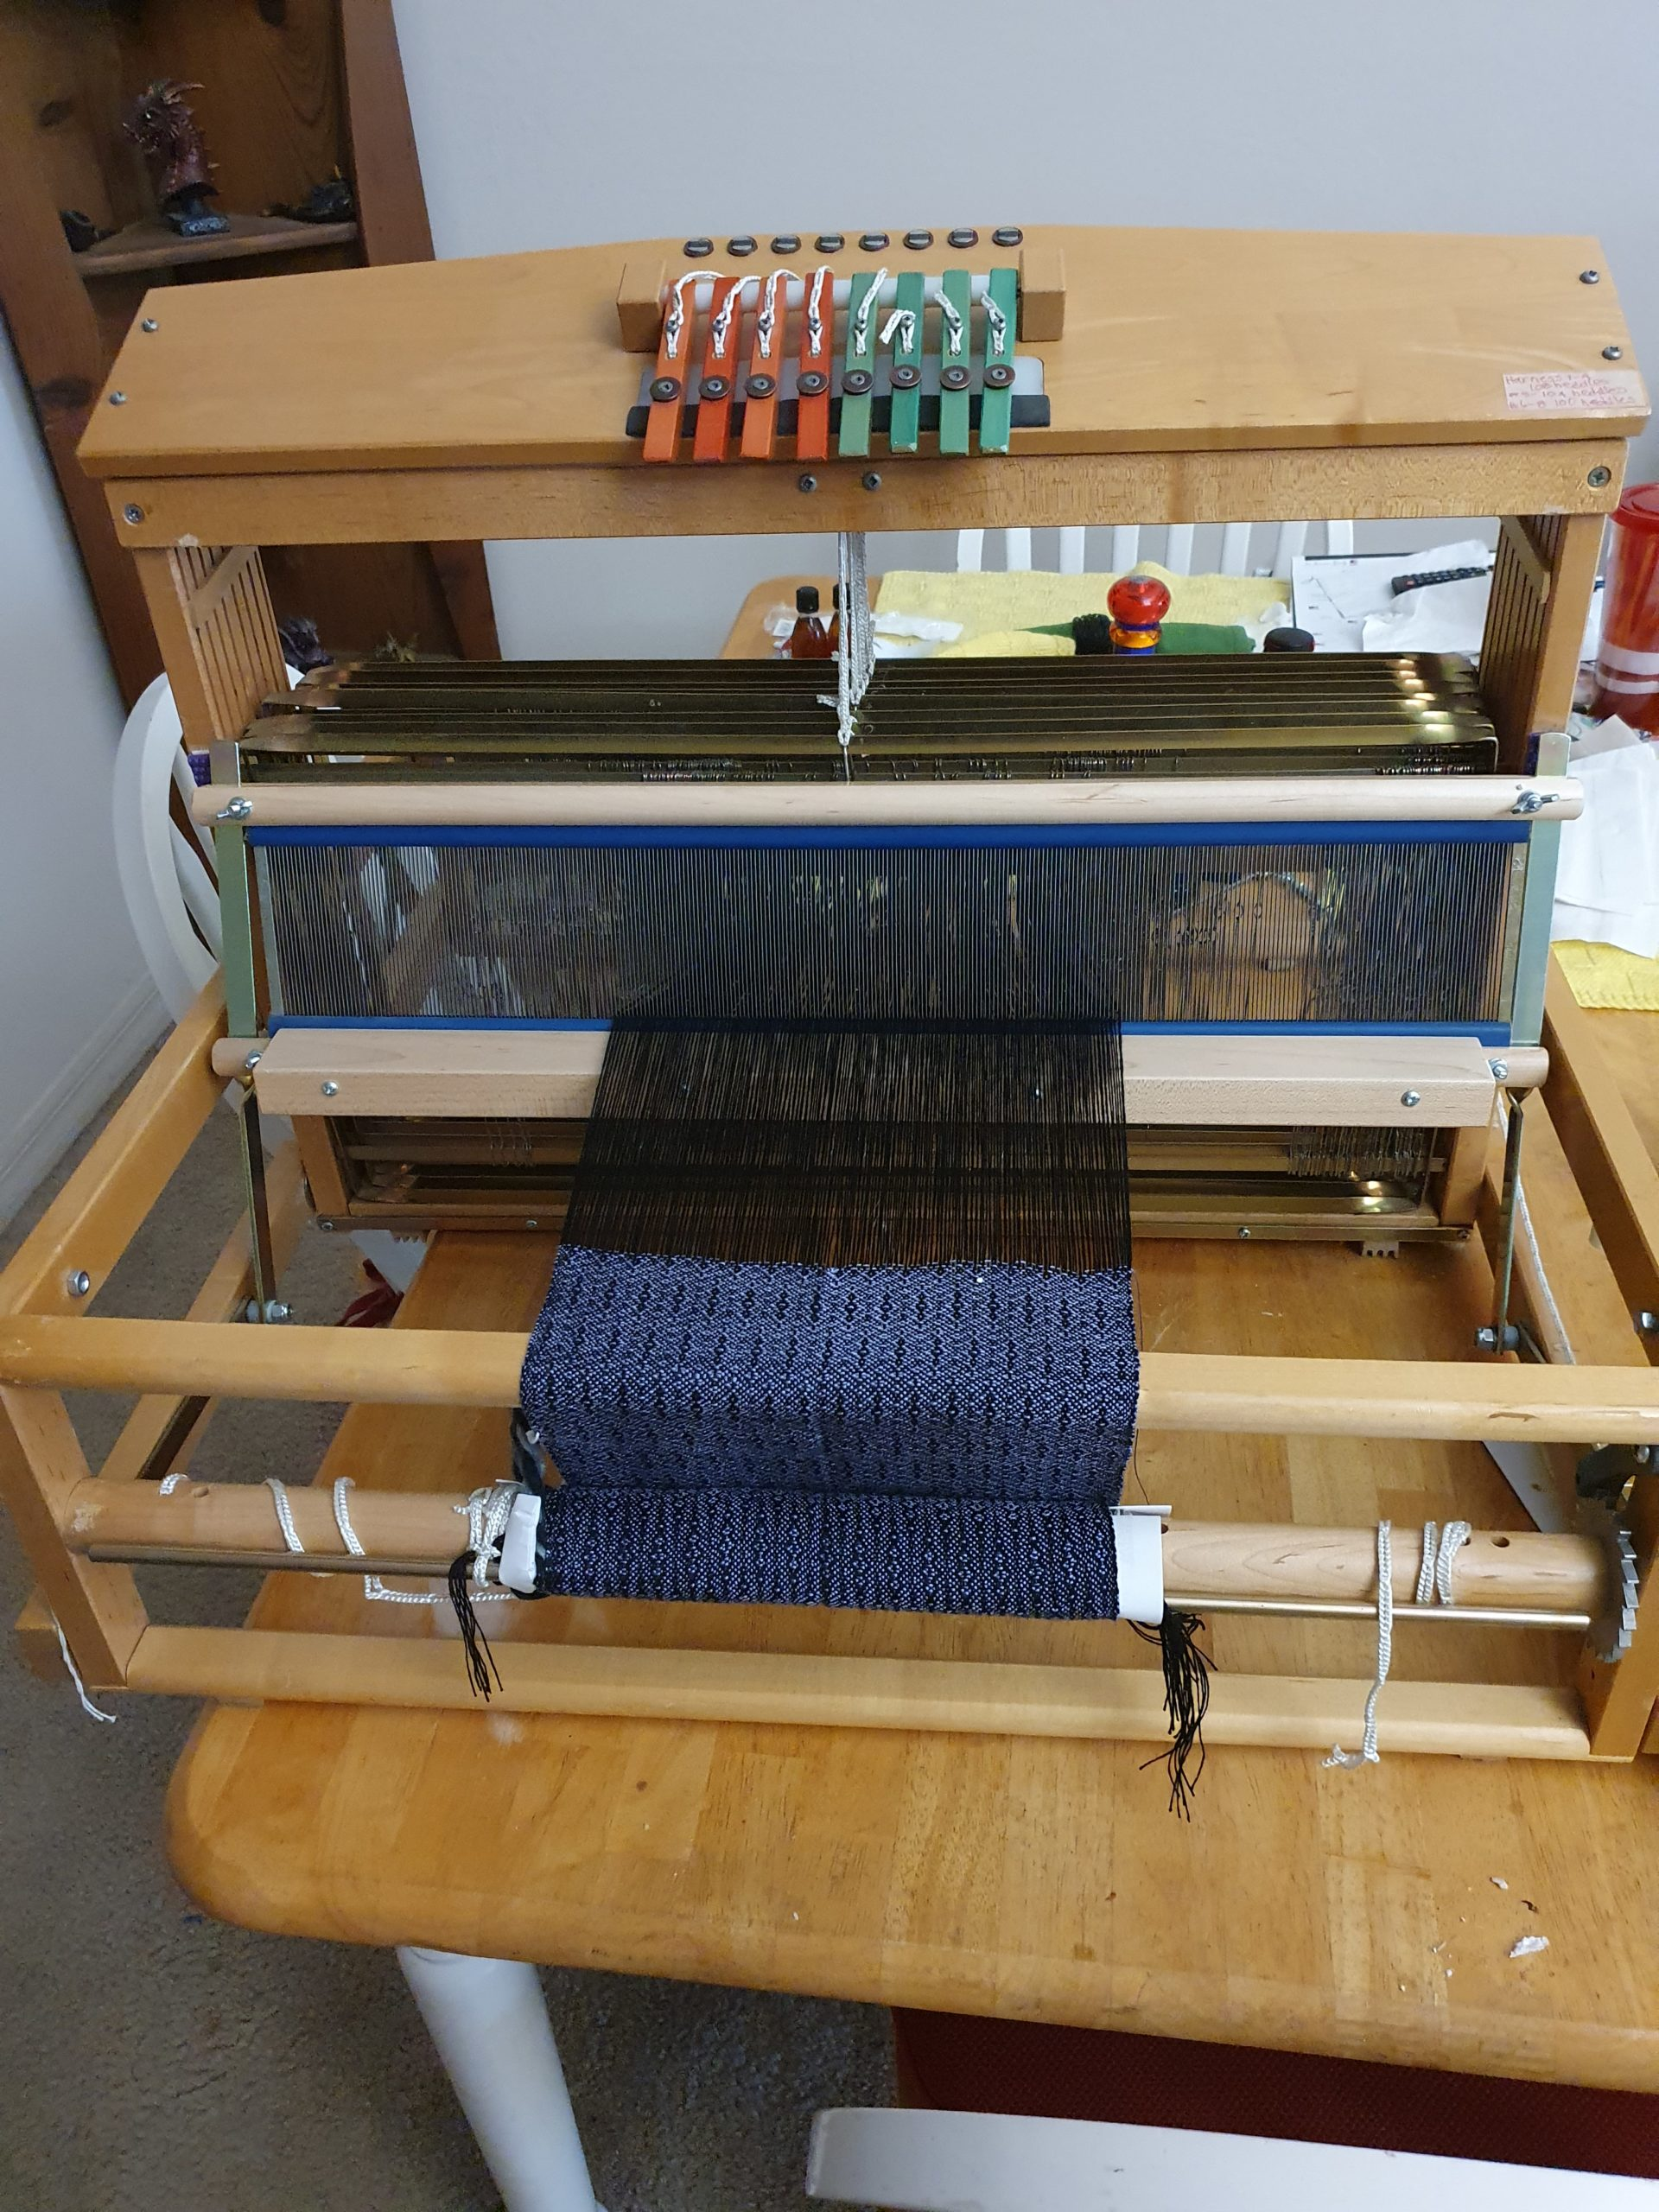 A weaving loom sitting on a dining table. There's a purple and black scarf project on it.